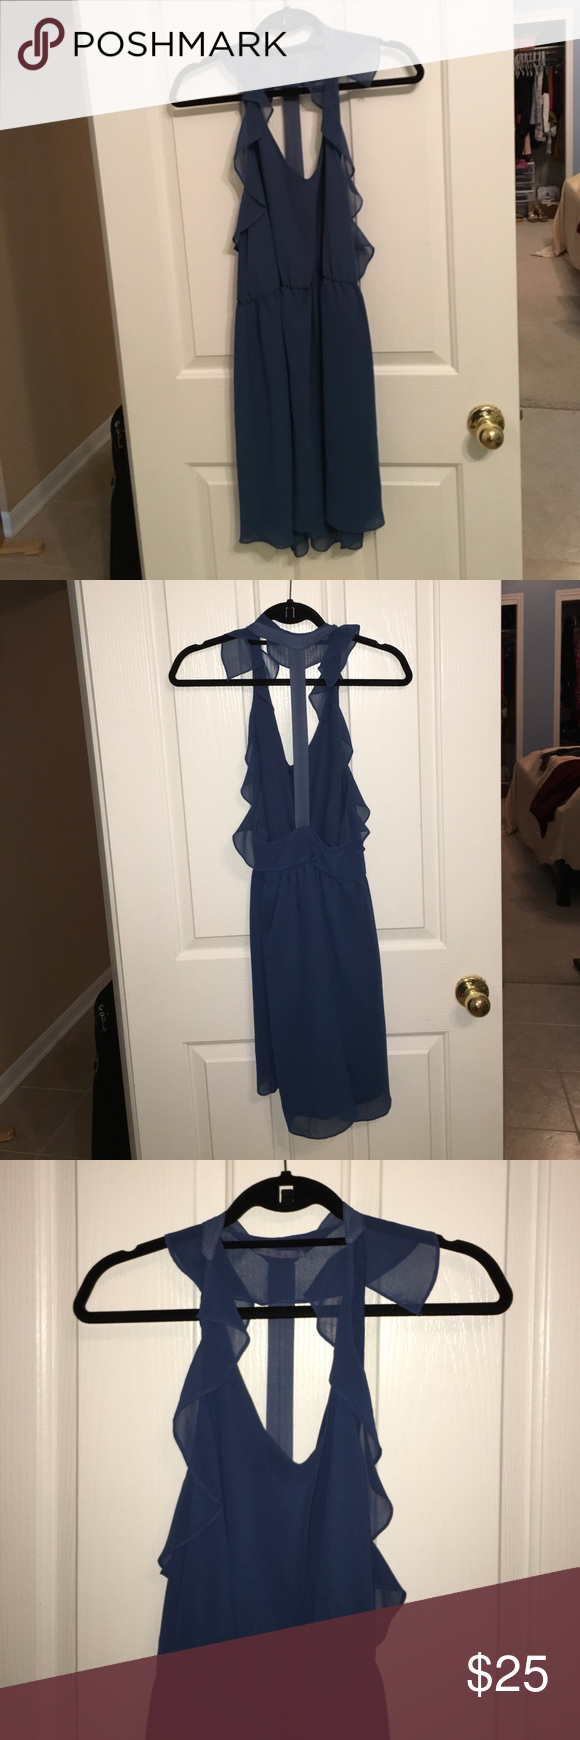 Classy, t-back ruffle dress Size medium blue ruffle dress by Wink in NYC, super classy and cute in great condition! *UO for exposure Urban Outfitters Dresses